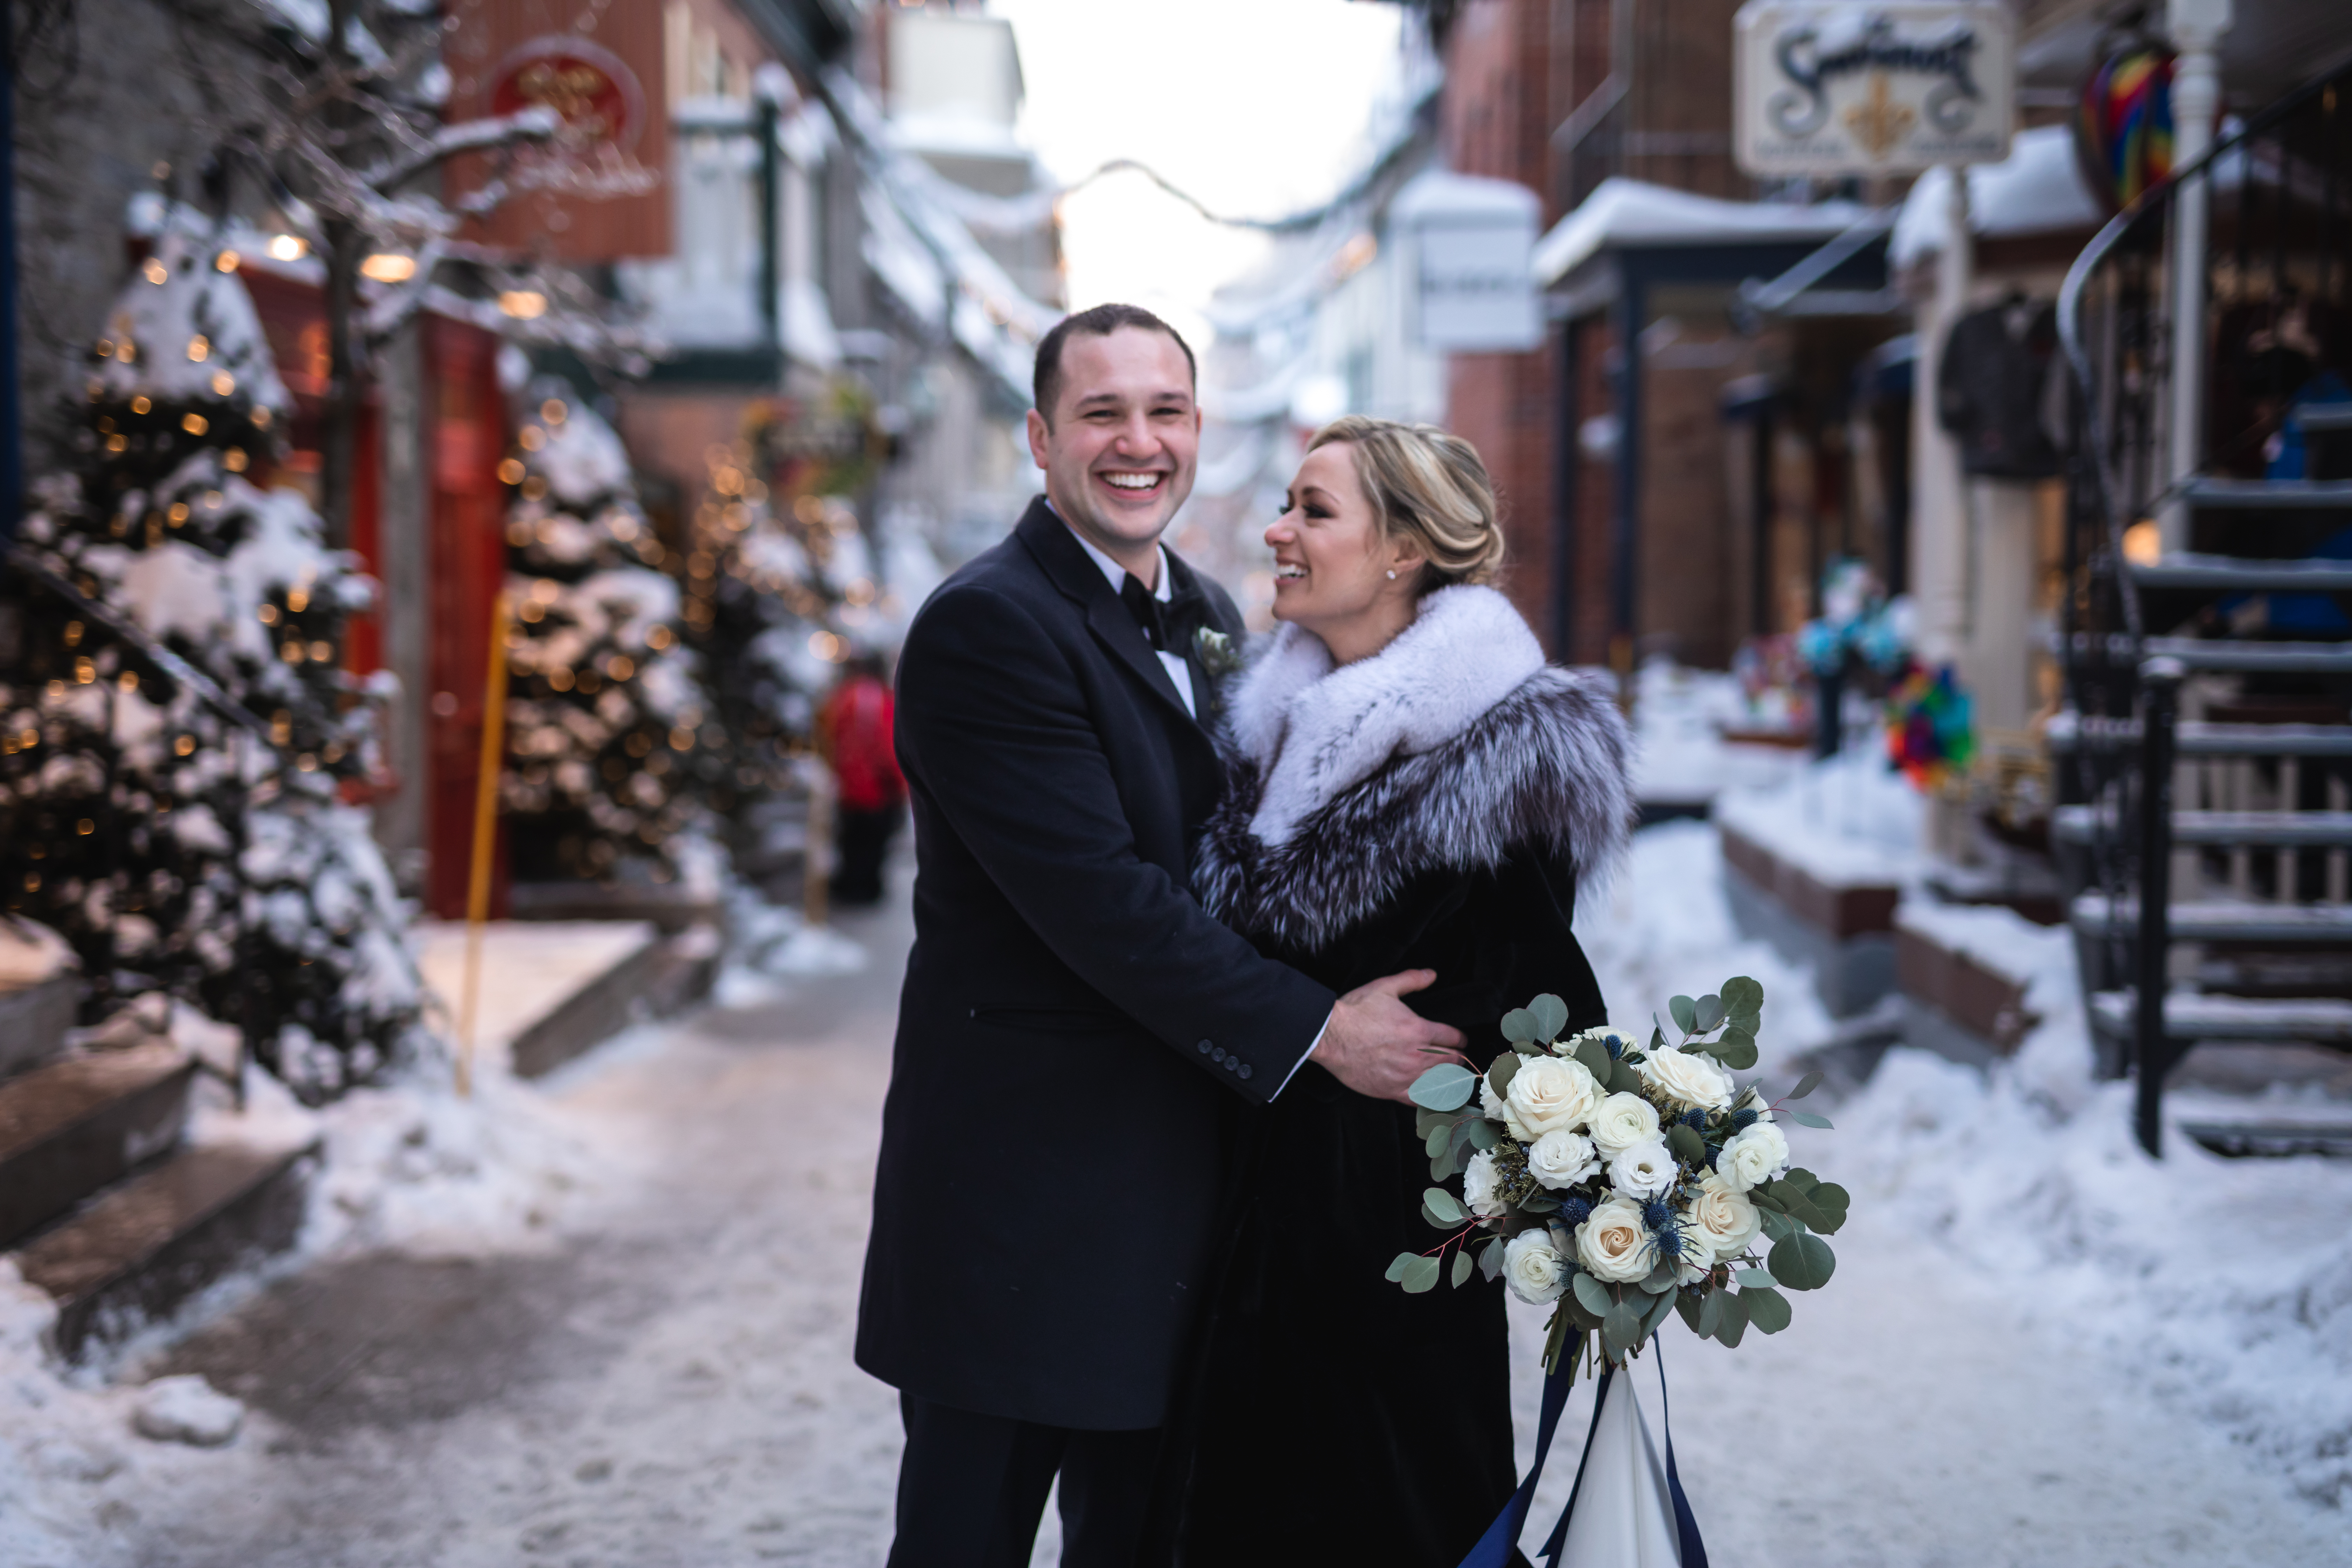 Laura + Bill | Quebec City, Canada | Fairmont Quebec City